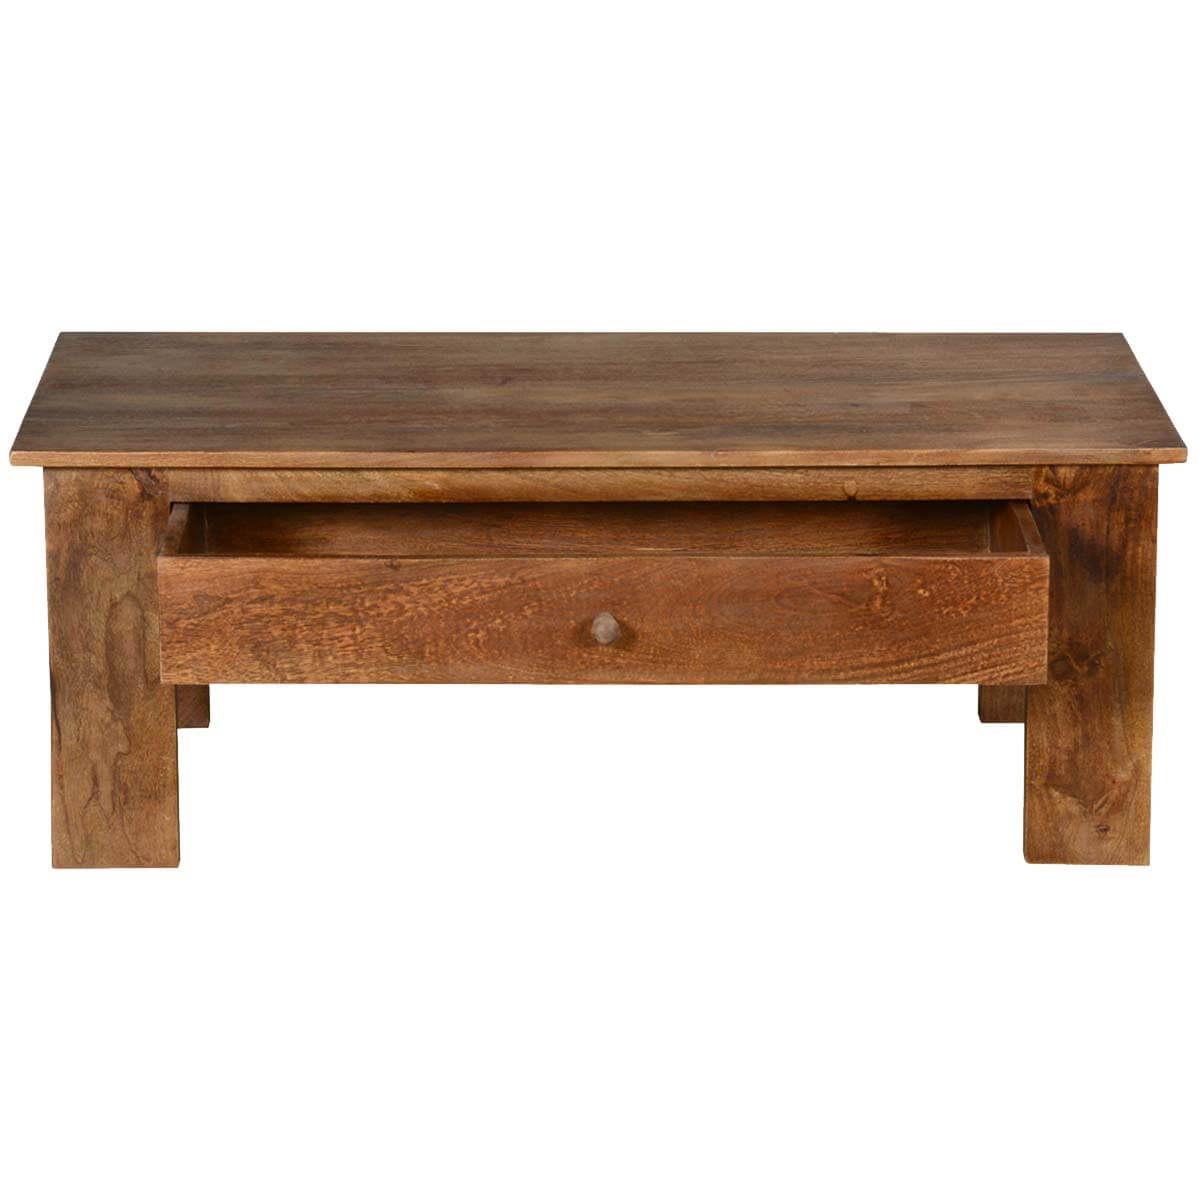 Pioneer rustic solid mango wood 42 coffee table w hidden for Rustic coffee table with drawers